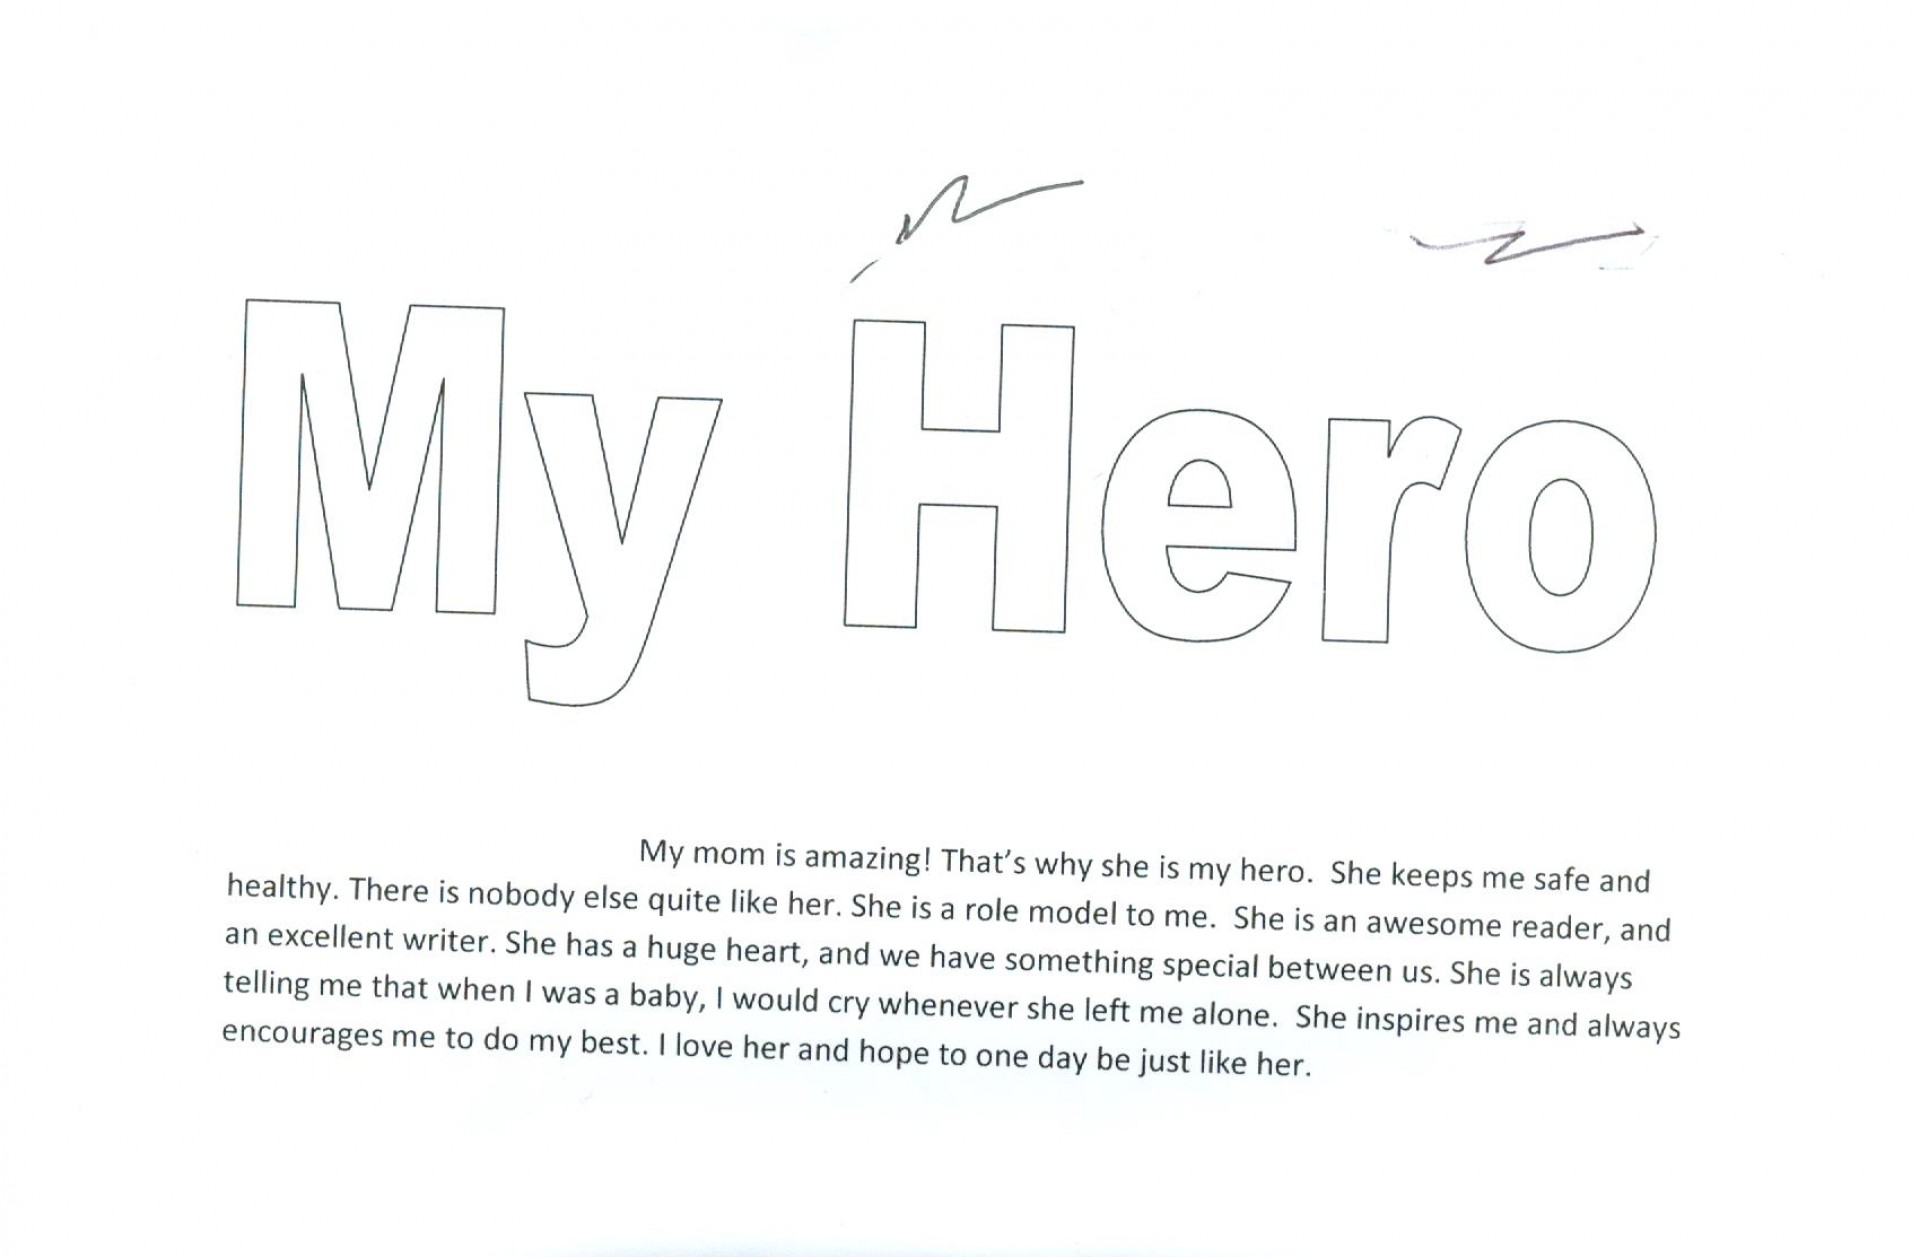 011 Hero Essay Audiehero My Is About Superhero In Hindi Father Inspiration Why On Short Favorite Unusual Parents 1920